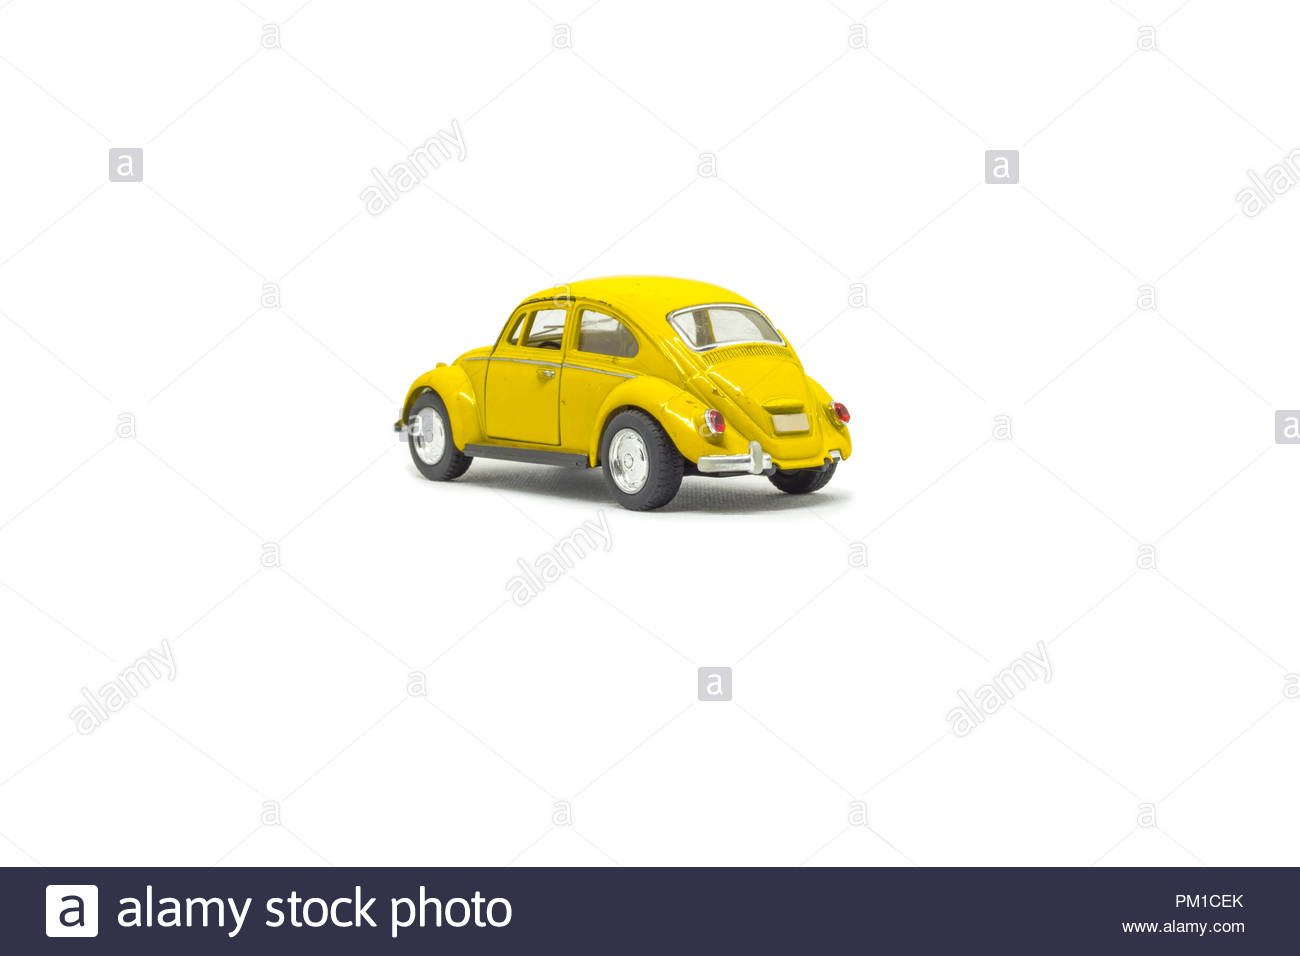 Isolated used yellow toy car, rear view - Stock Image